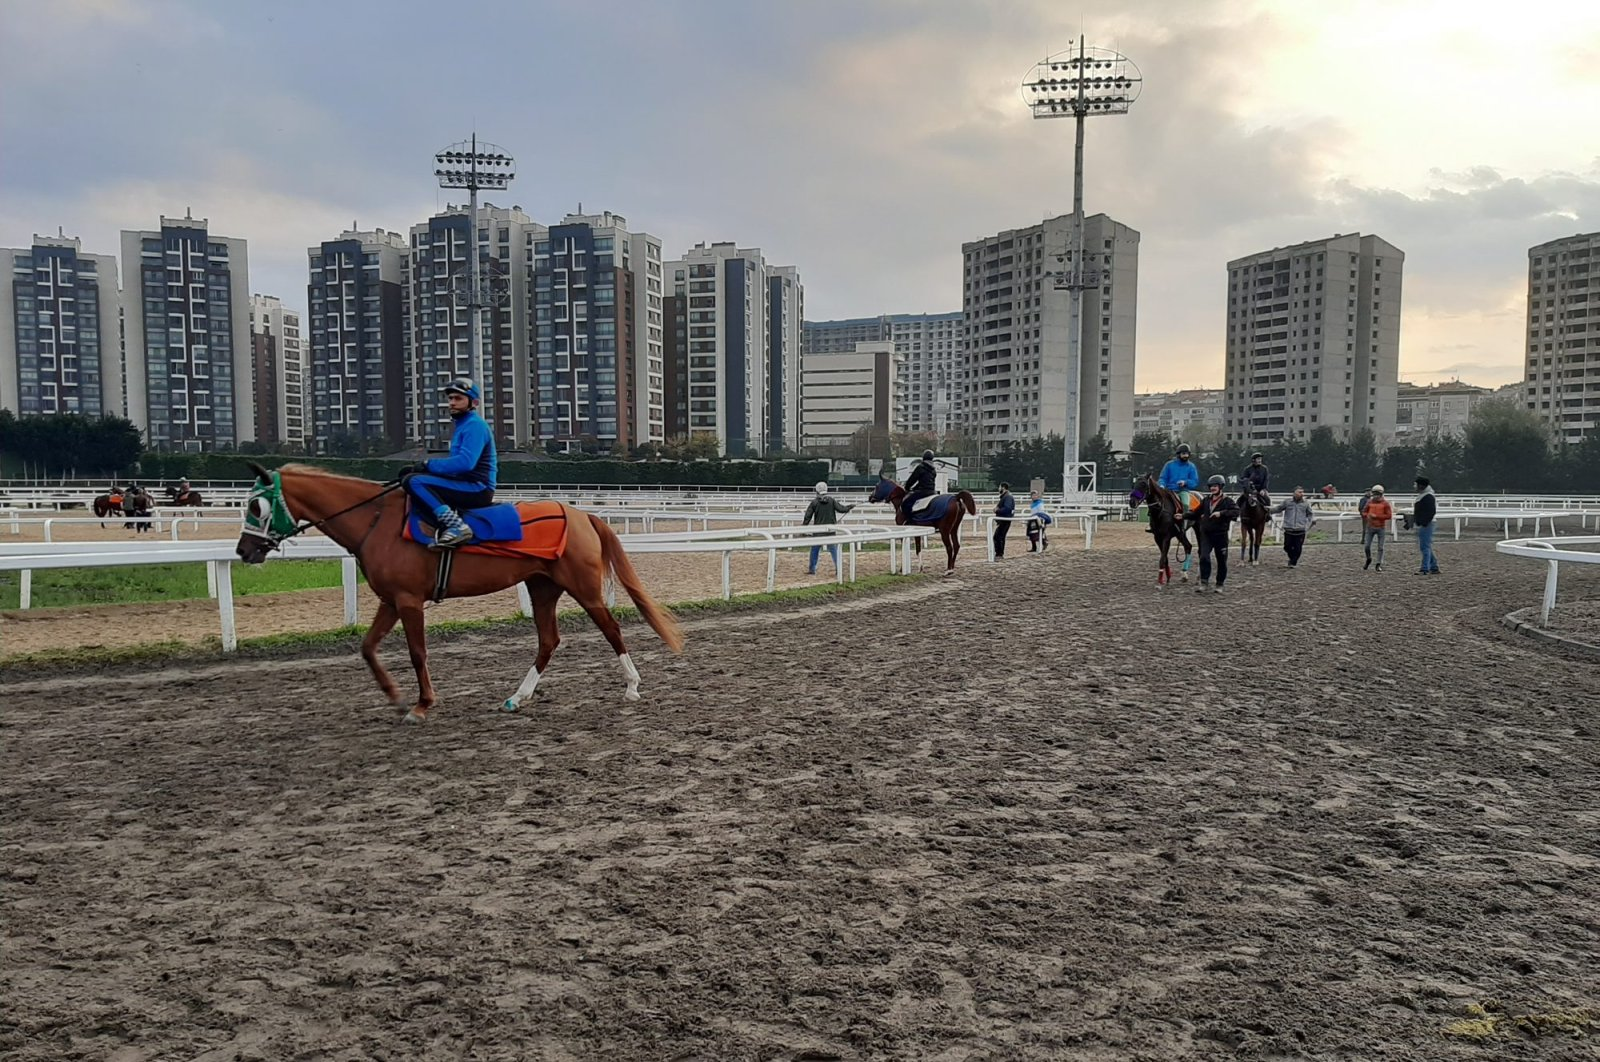 Jockeys ride horses in Veliefendi racetrack in Istanbul, Monday, March 23, 2020. (DHA Photo)